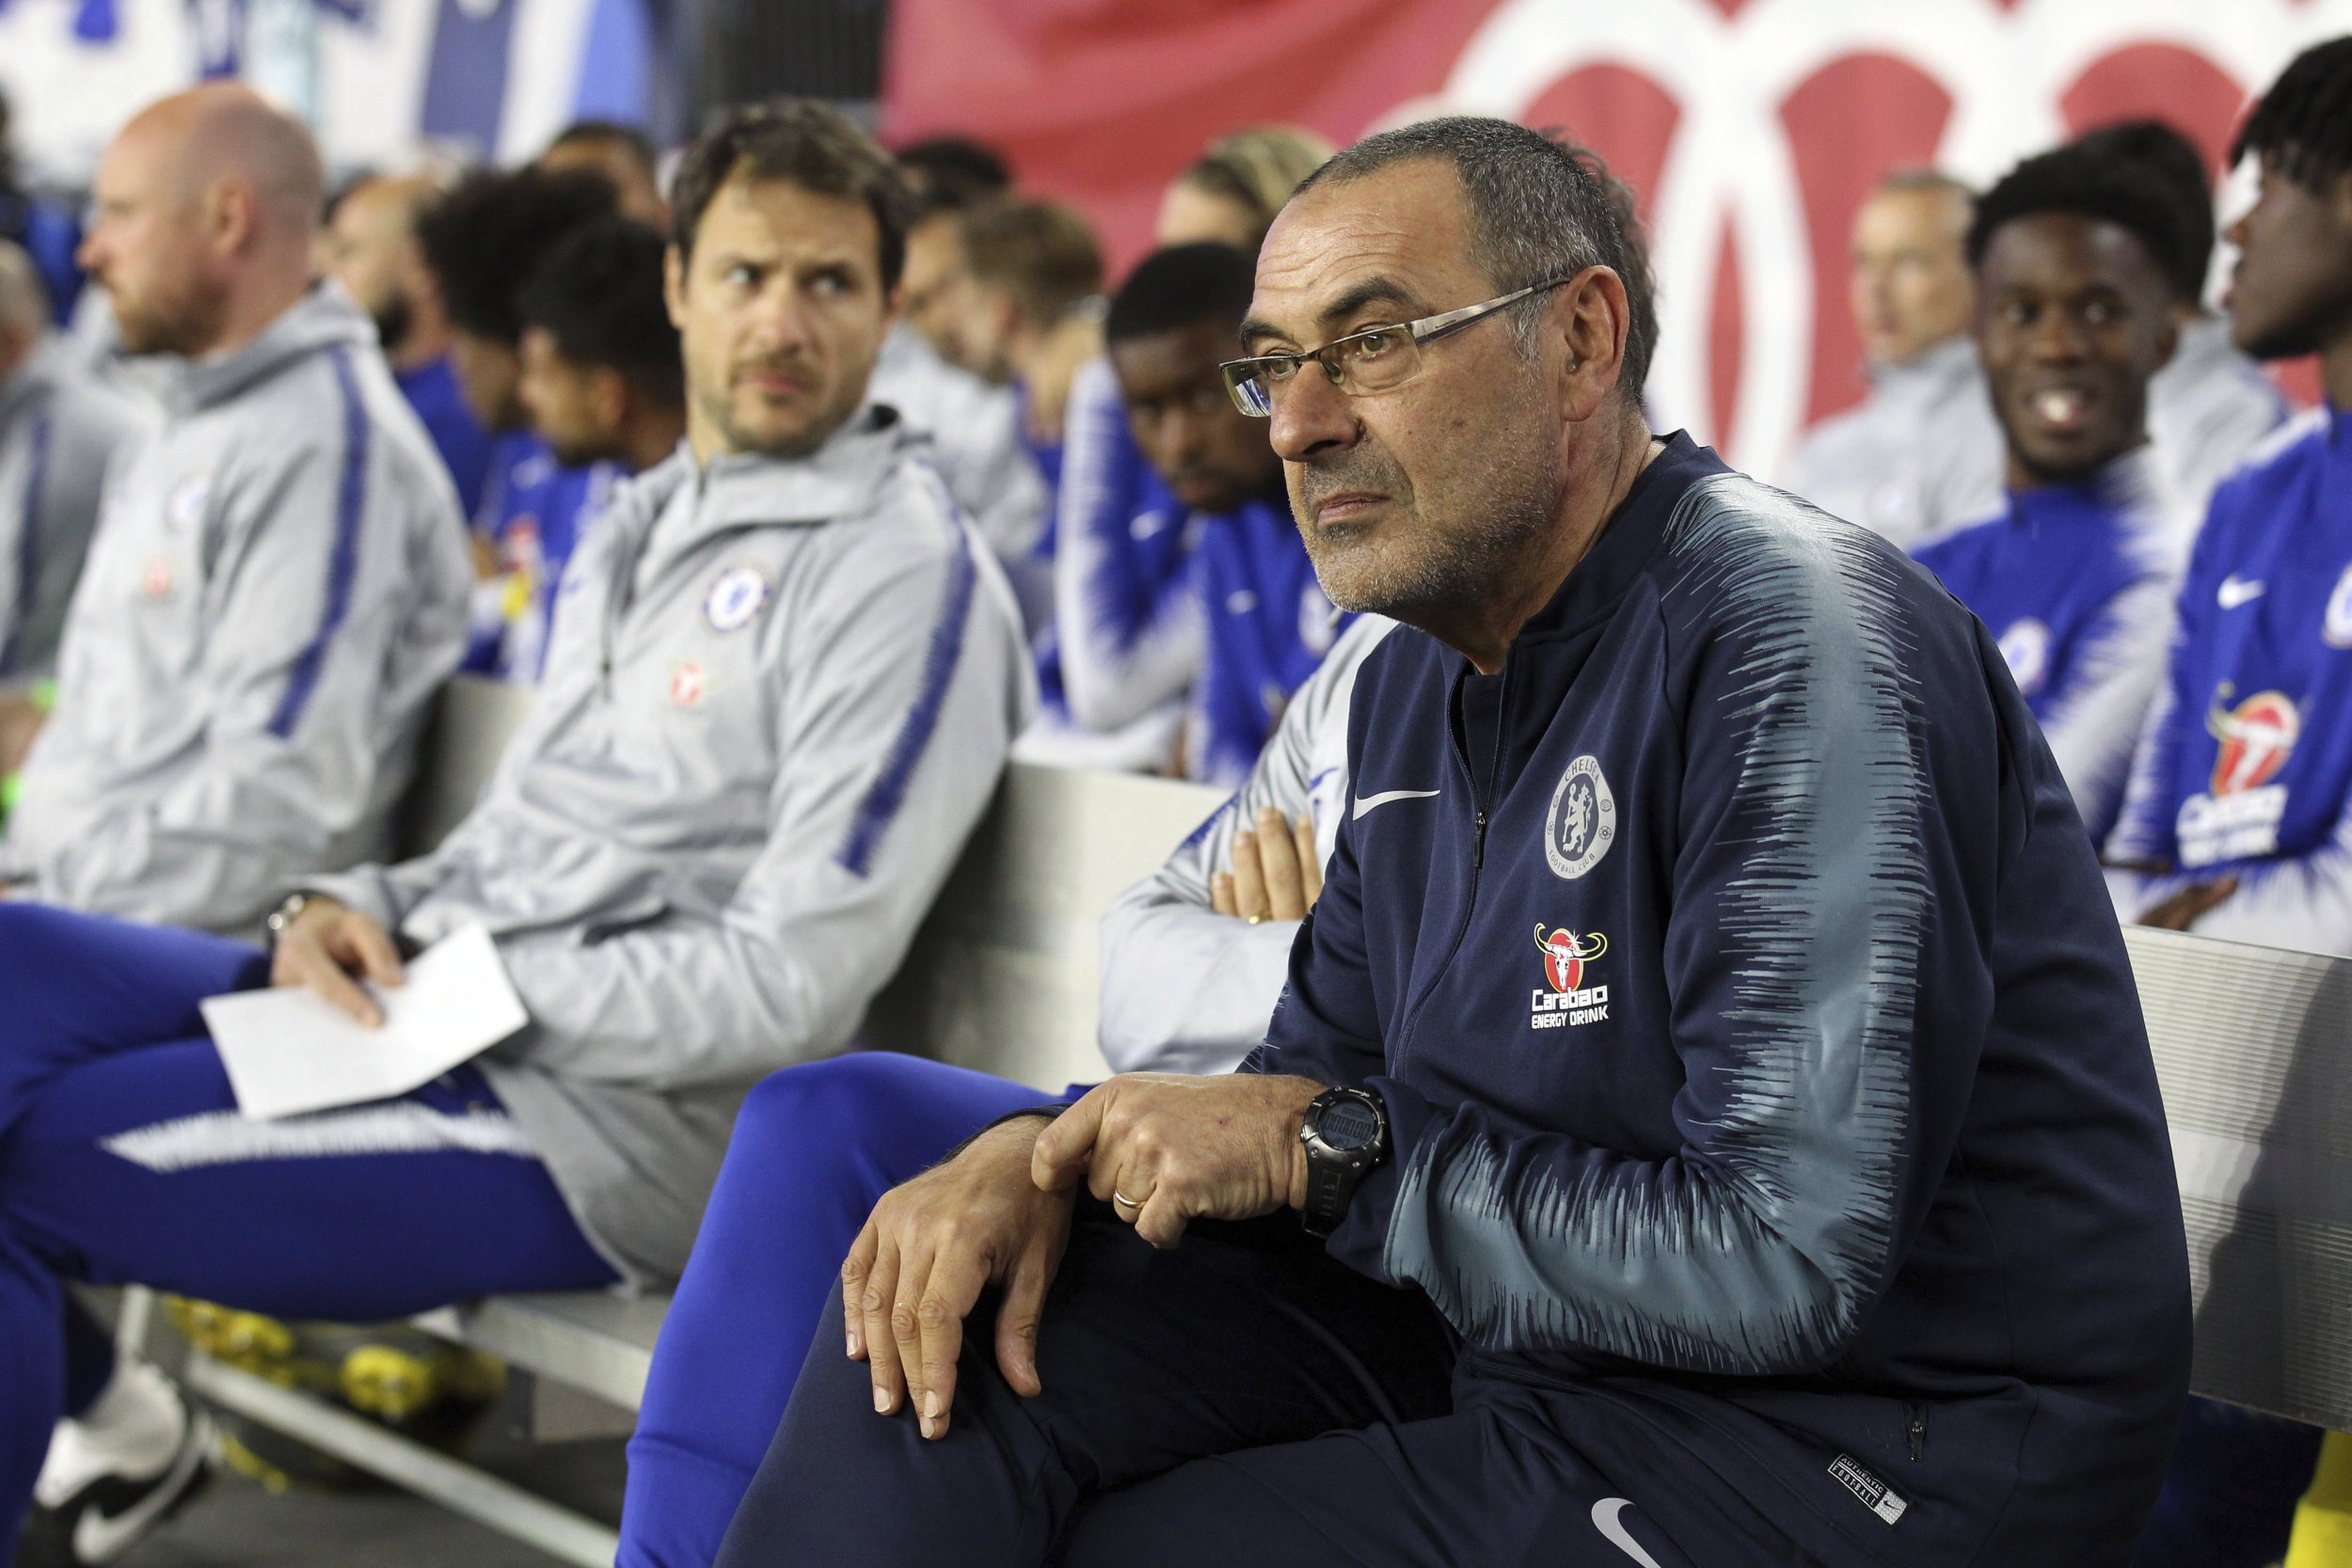 Chelsea head coach Maurizio Sarri watches from the bench during the first half of a friendly soccer match against the New England Revolution, Wednesday, May 15, 2019, in Foxborough, Mass. (AP Photo/Stew Milne)